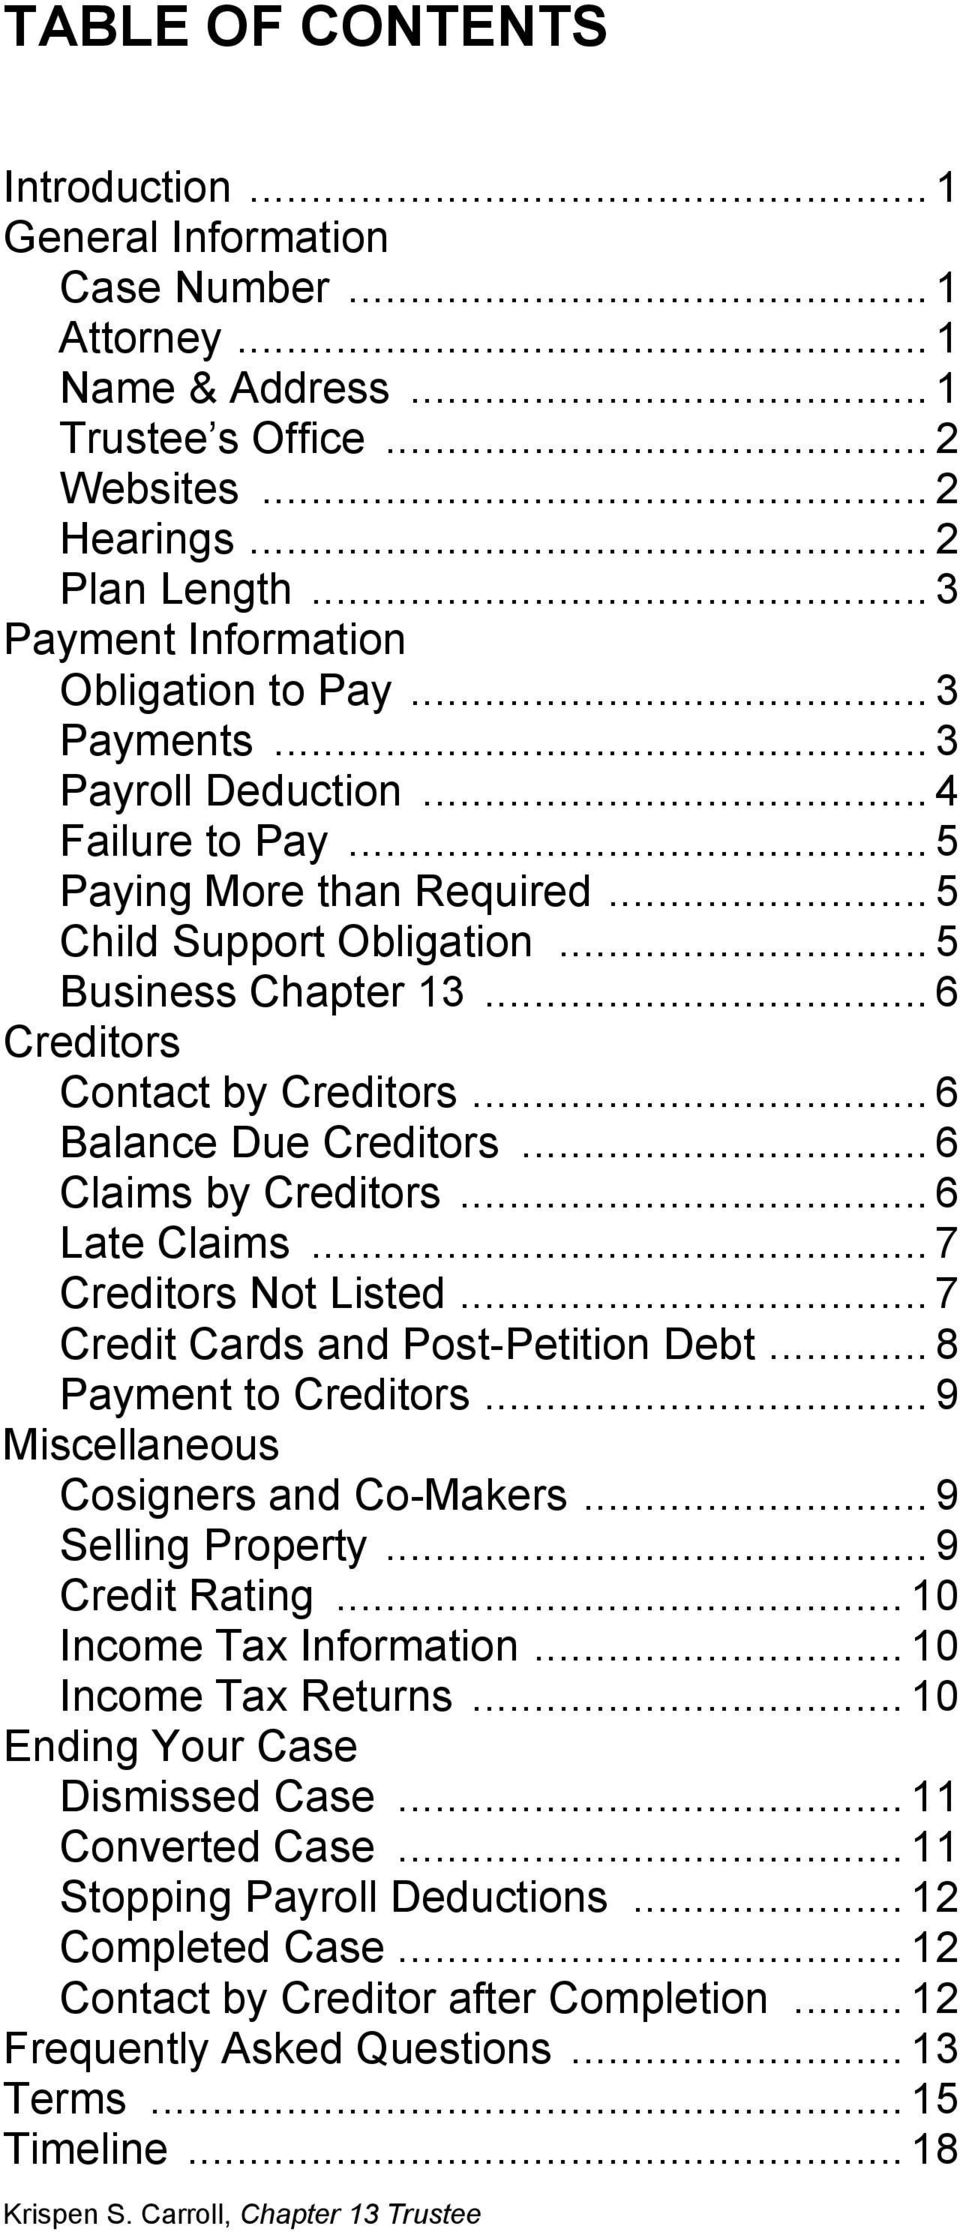 .. 6 Creditors Contact by Creditors... 6 Balance Due Creditors... 6 Claims by Creditors... 6 Late Claims... 7 Creditors Not Listed... 7 Credit Cards and Post-Petition Debt... 8 Payment to Creditors.